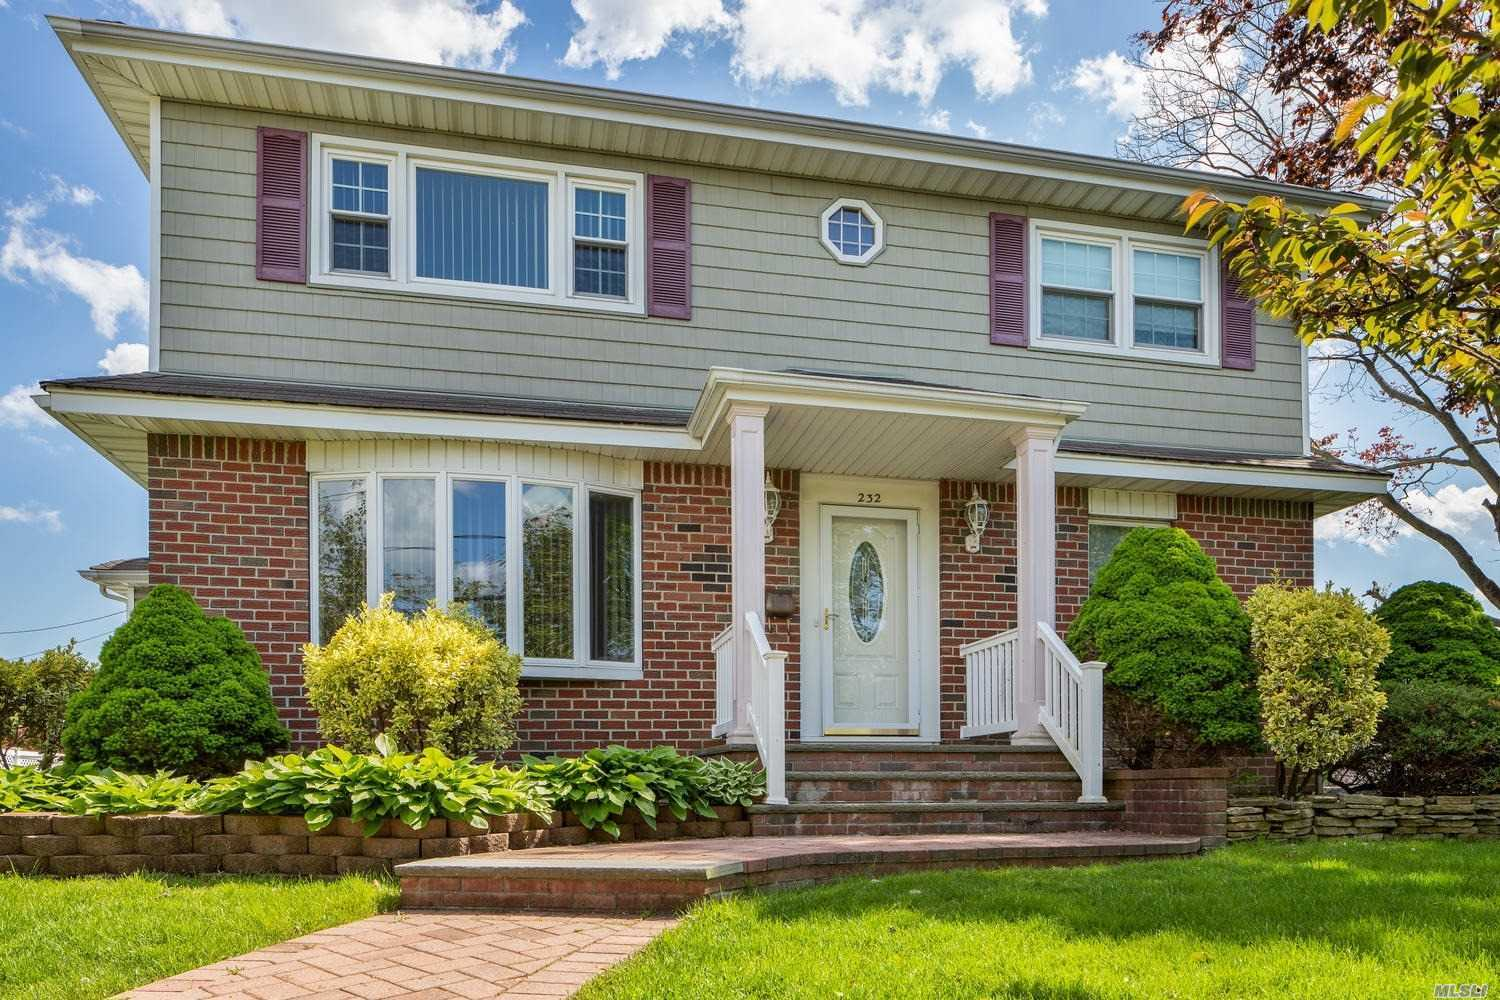 Welcome Home to this spacious colonial nestled on a rare oversized lot!!! This home has so much space and potential, ready for its next owners.  Featuring a 1.5 detached garage and a huge yard! Possible Mother/Daughter with proper permits. Nestled in the heart of Massapequa seconds away from shopping, transportation and the preserve. Parklike yard.